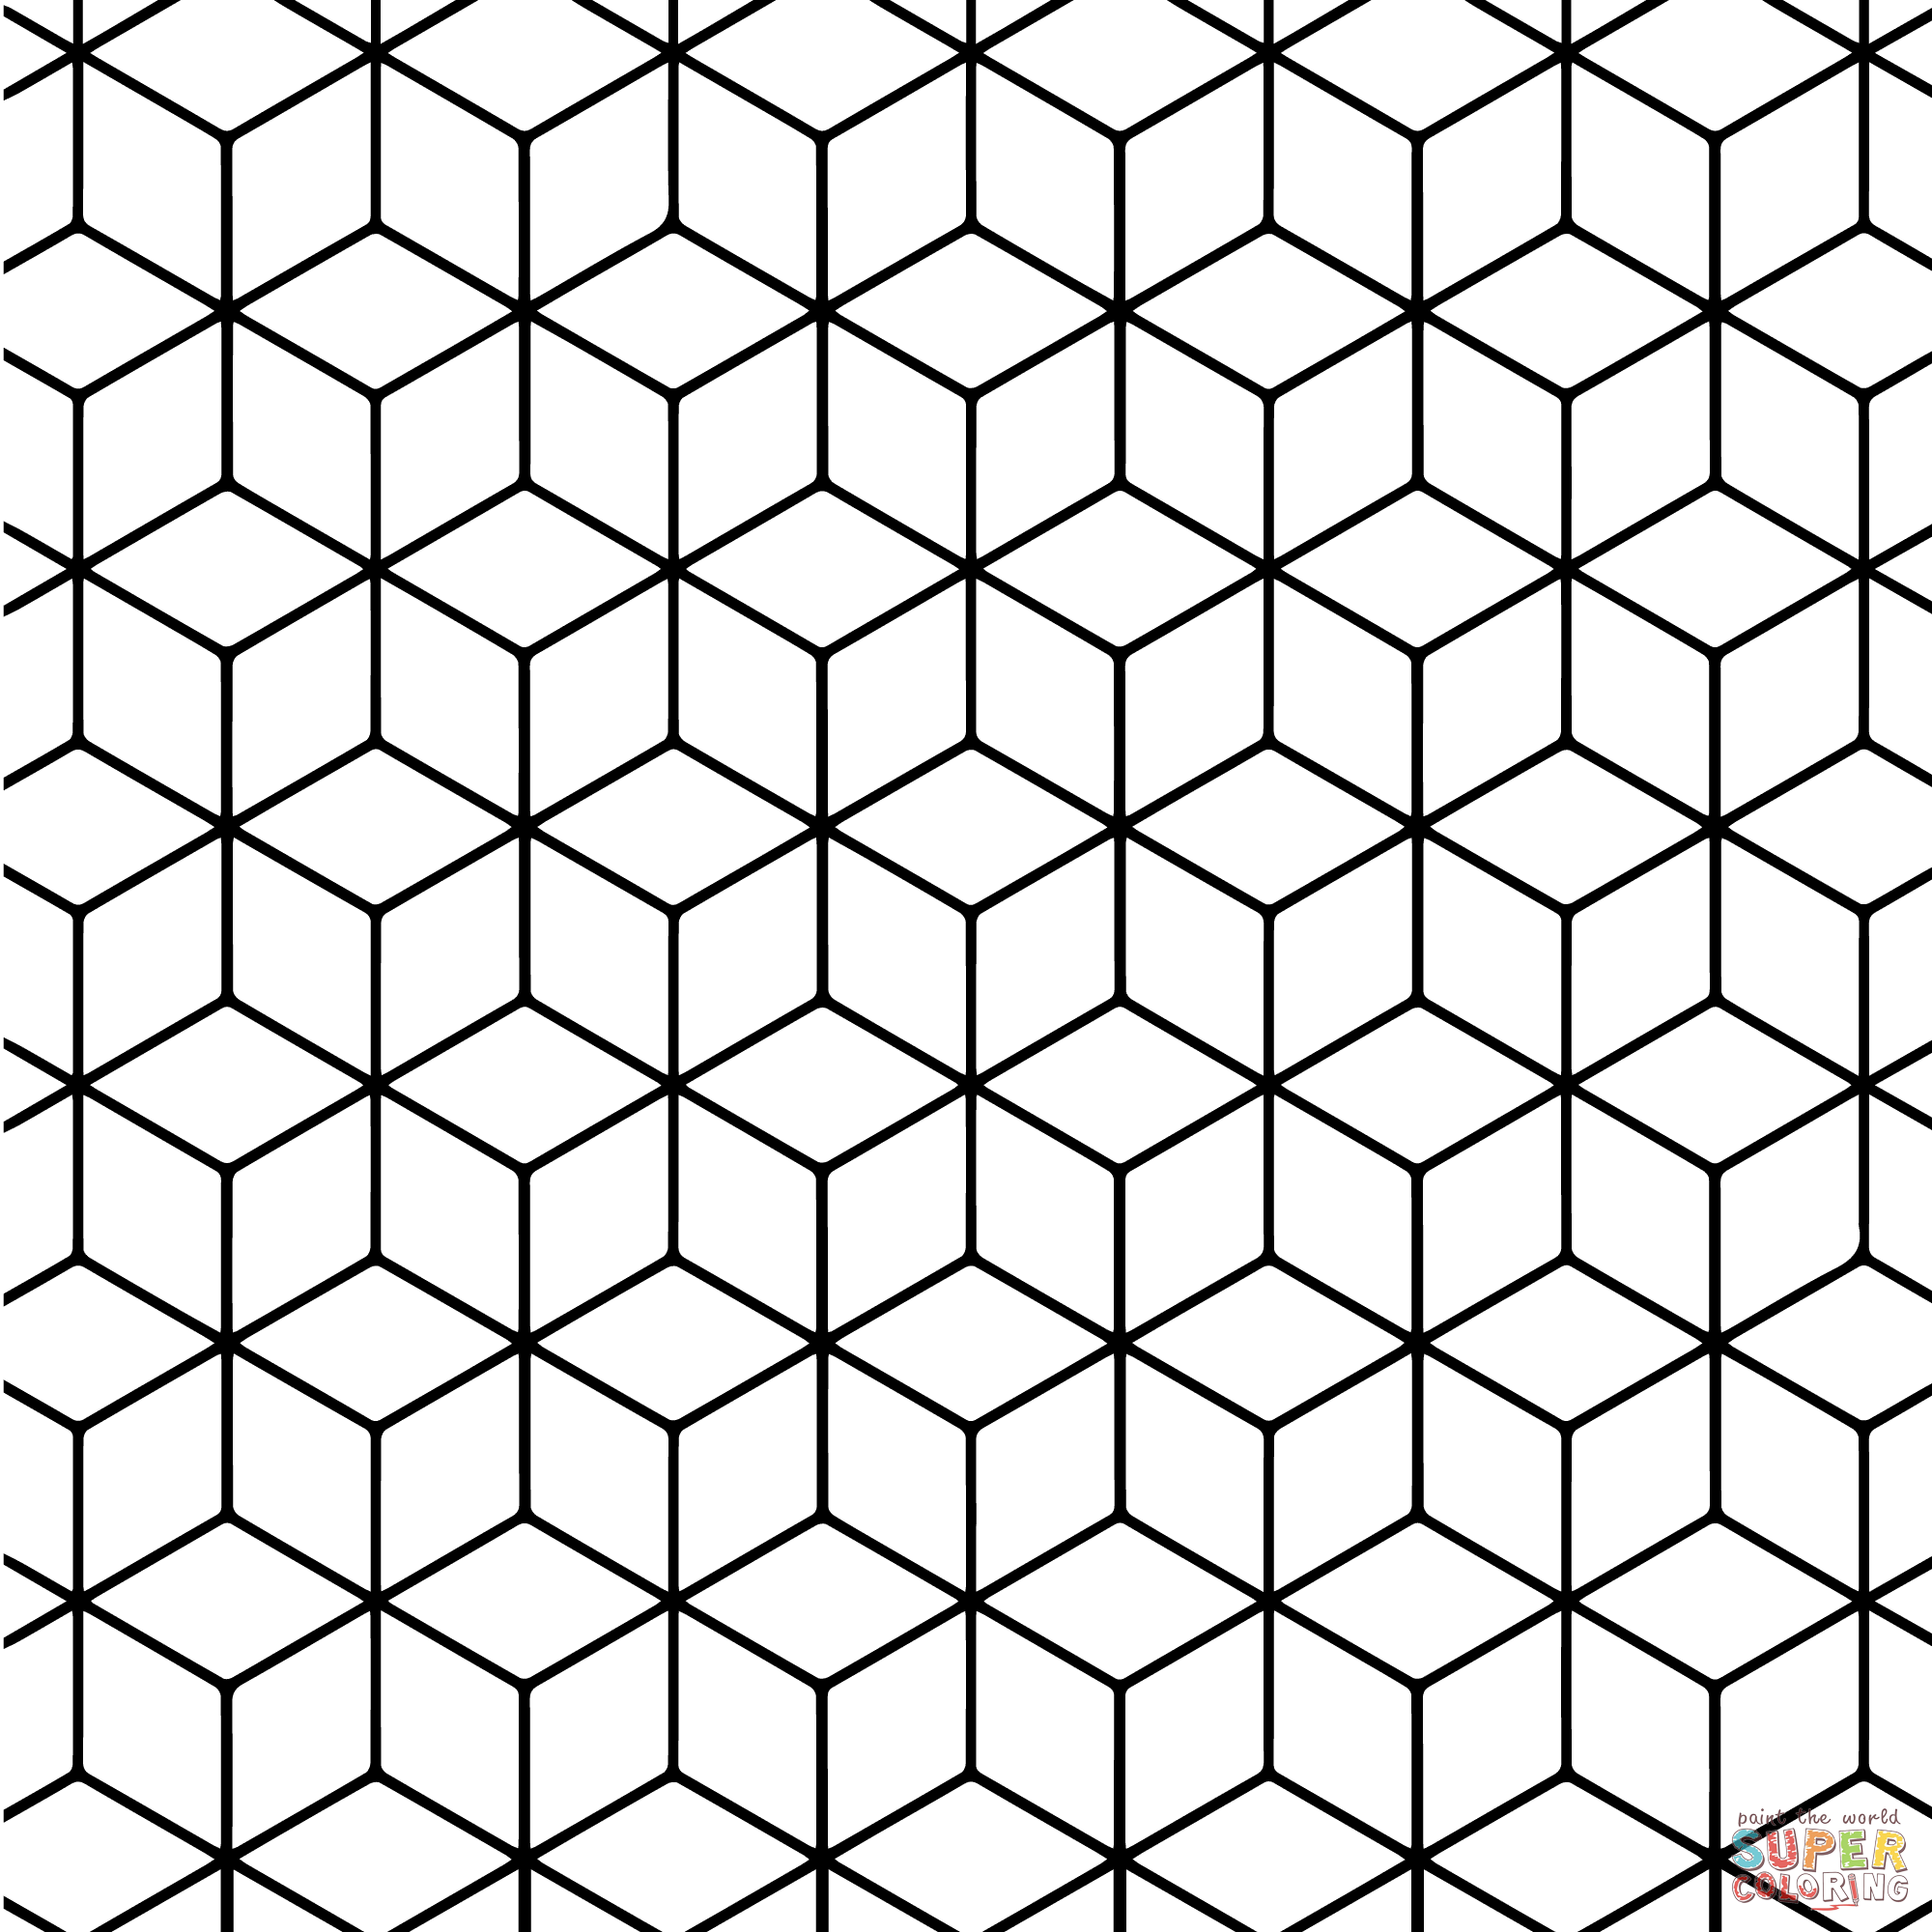 Worksheets Tessellation Worksheets To Color free tessellations coloring pages az geometric tessellation with rhombus pattern page free